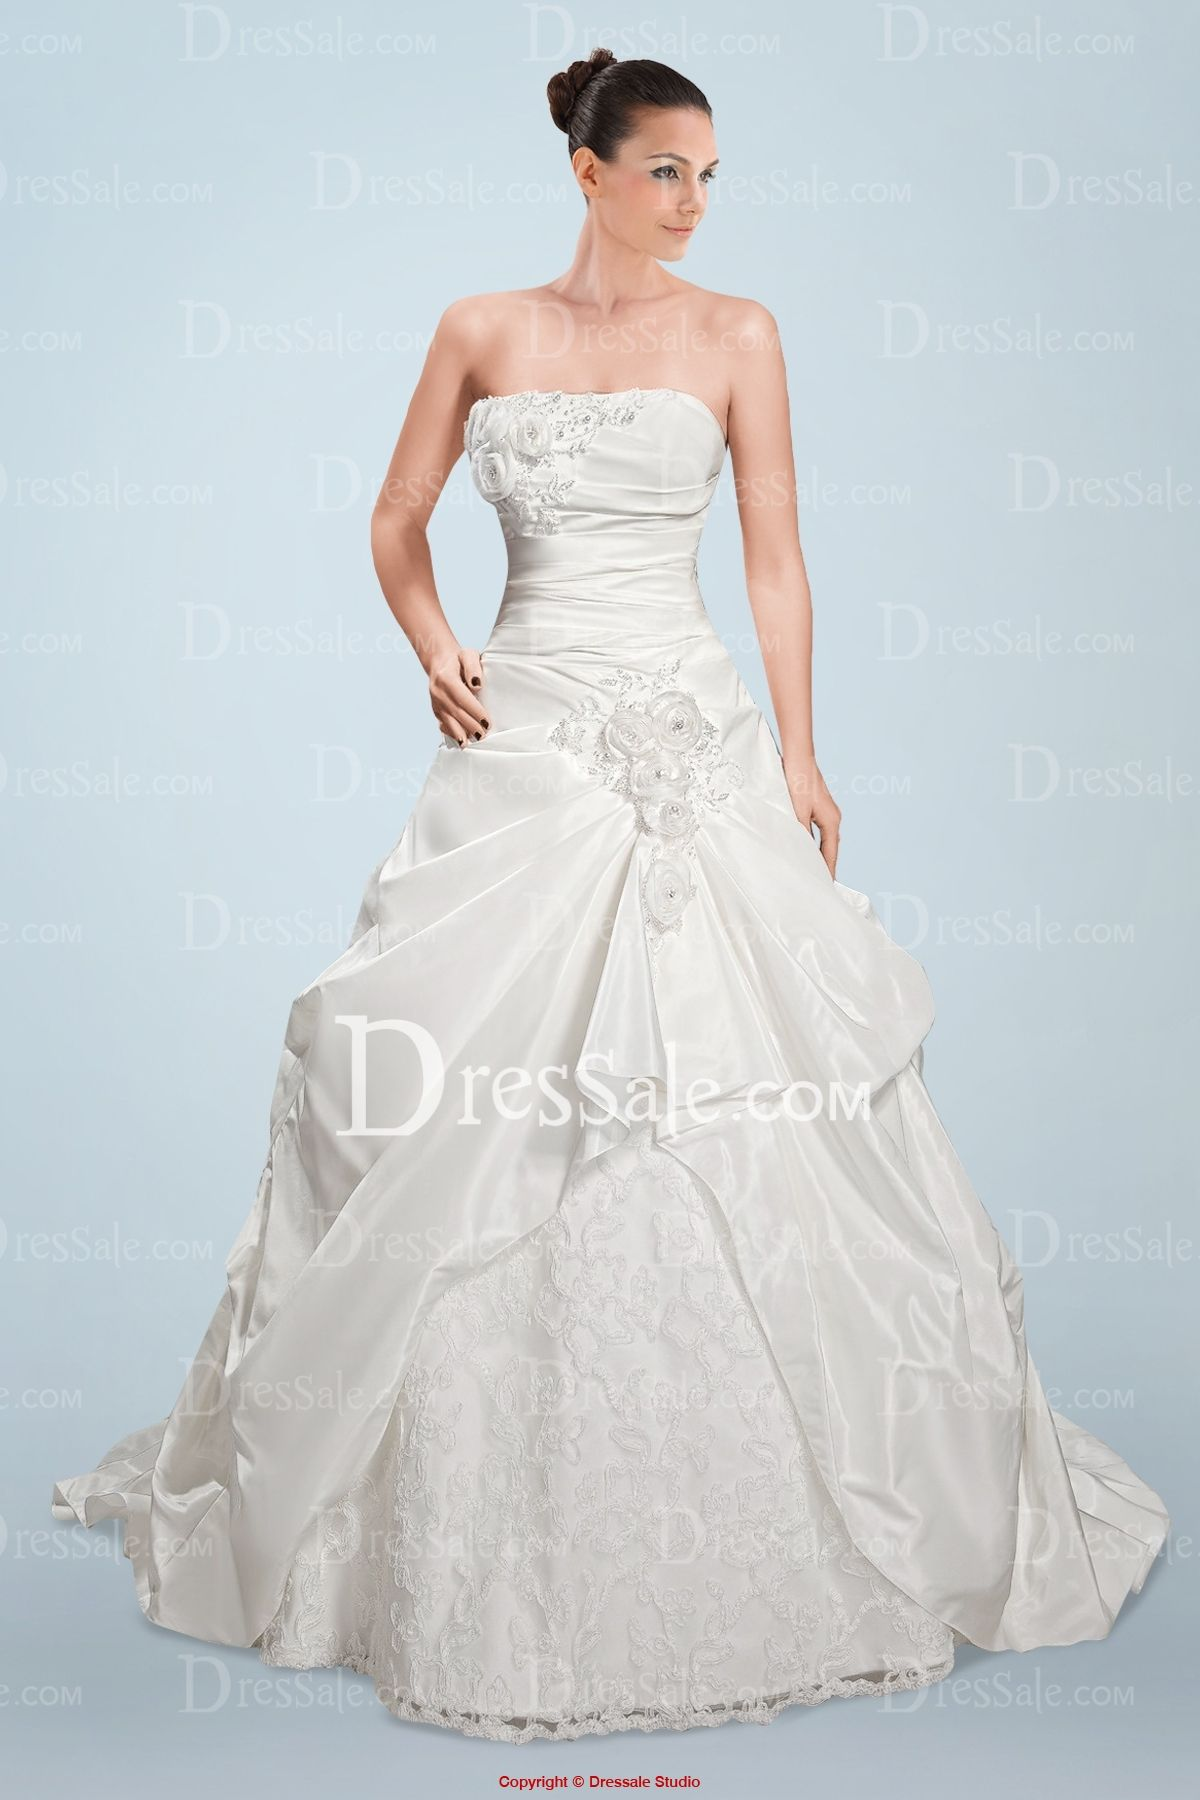 Imposing Strapless Princess Wedding Dress with Beaded